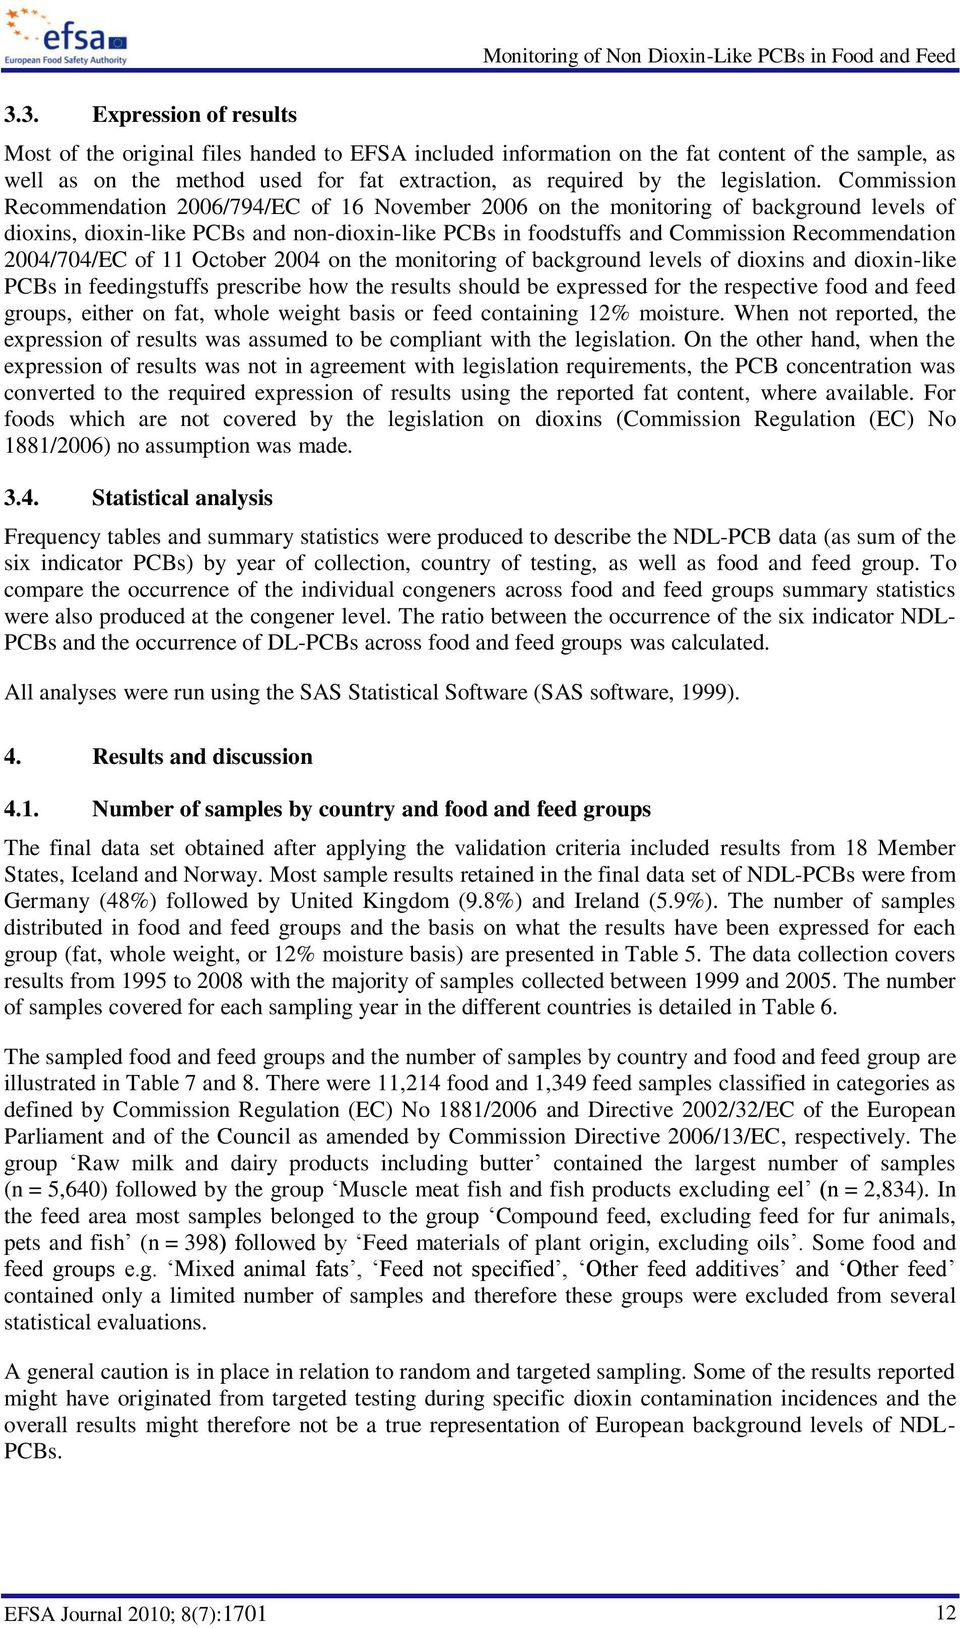 Commission Recommendation 2006/794/EC of 16 November 2006 on the monitoring of background levels of dioxins, dioxin-like PCBs and non-dioxin-like PCBs in foodstuffs and Commission Recommendation